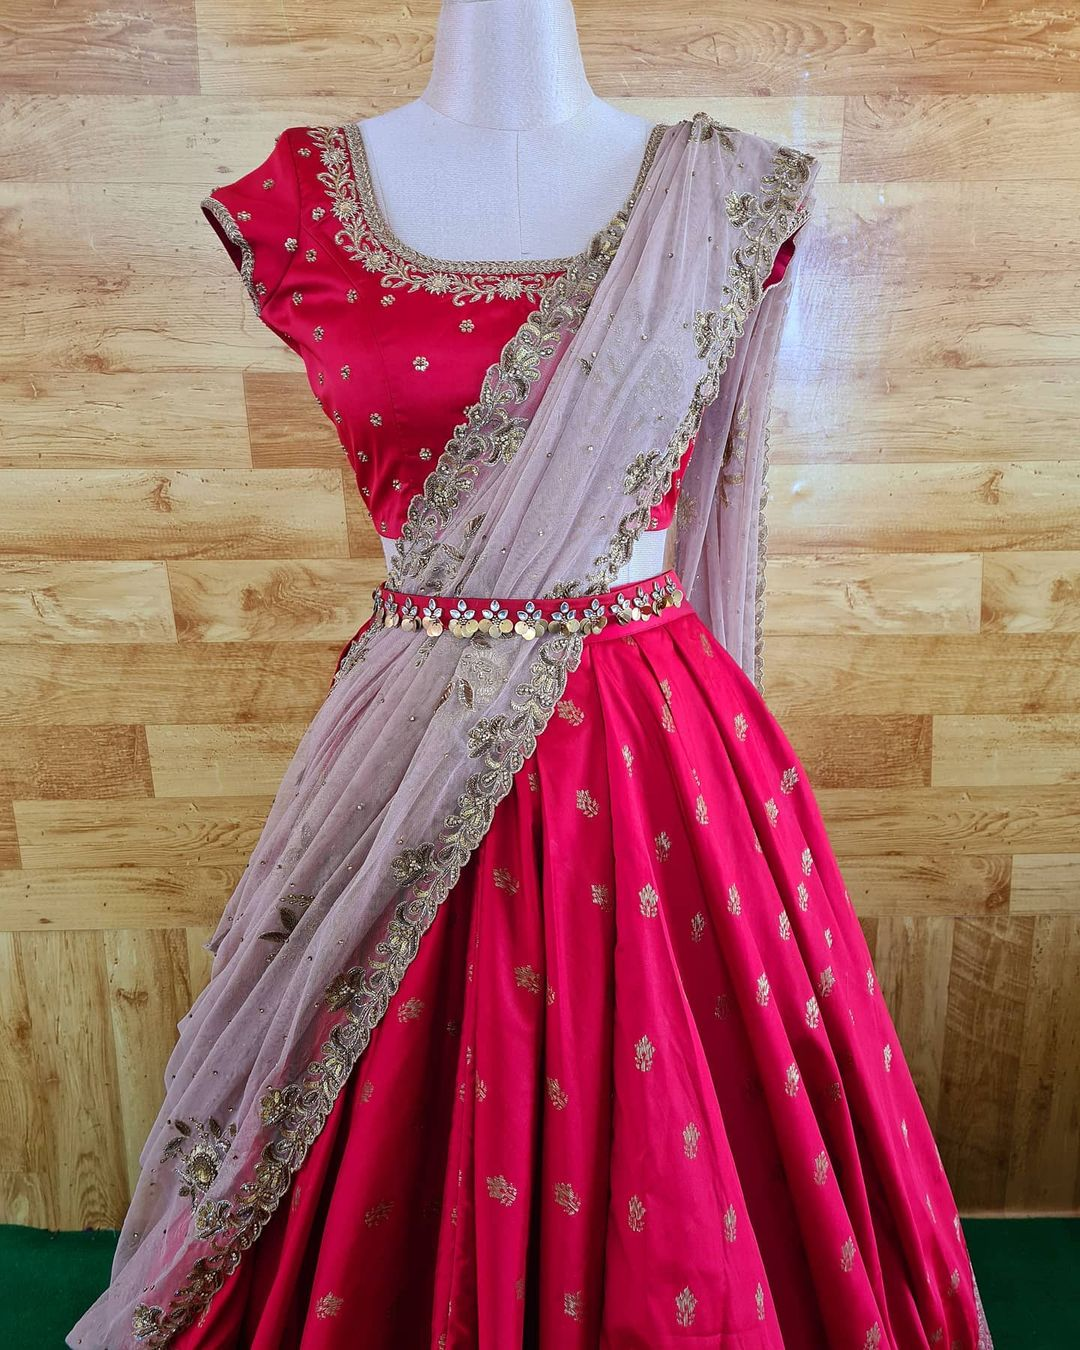 vintage old school glamour is to be preserved as a style lesson for all eras to come. Asymmetric lehenga set. 2021-04-04